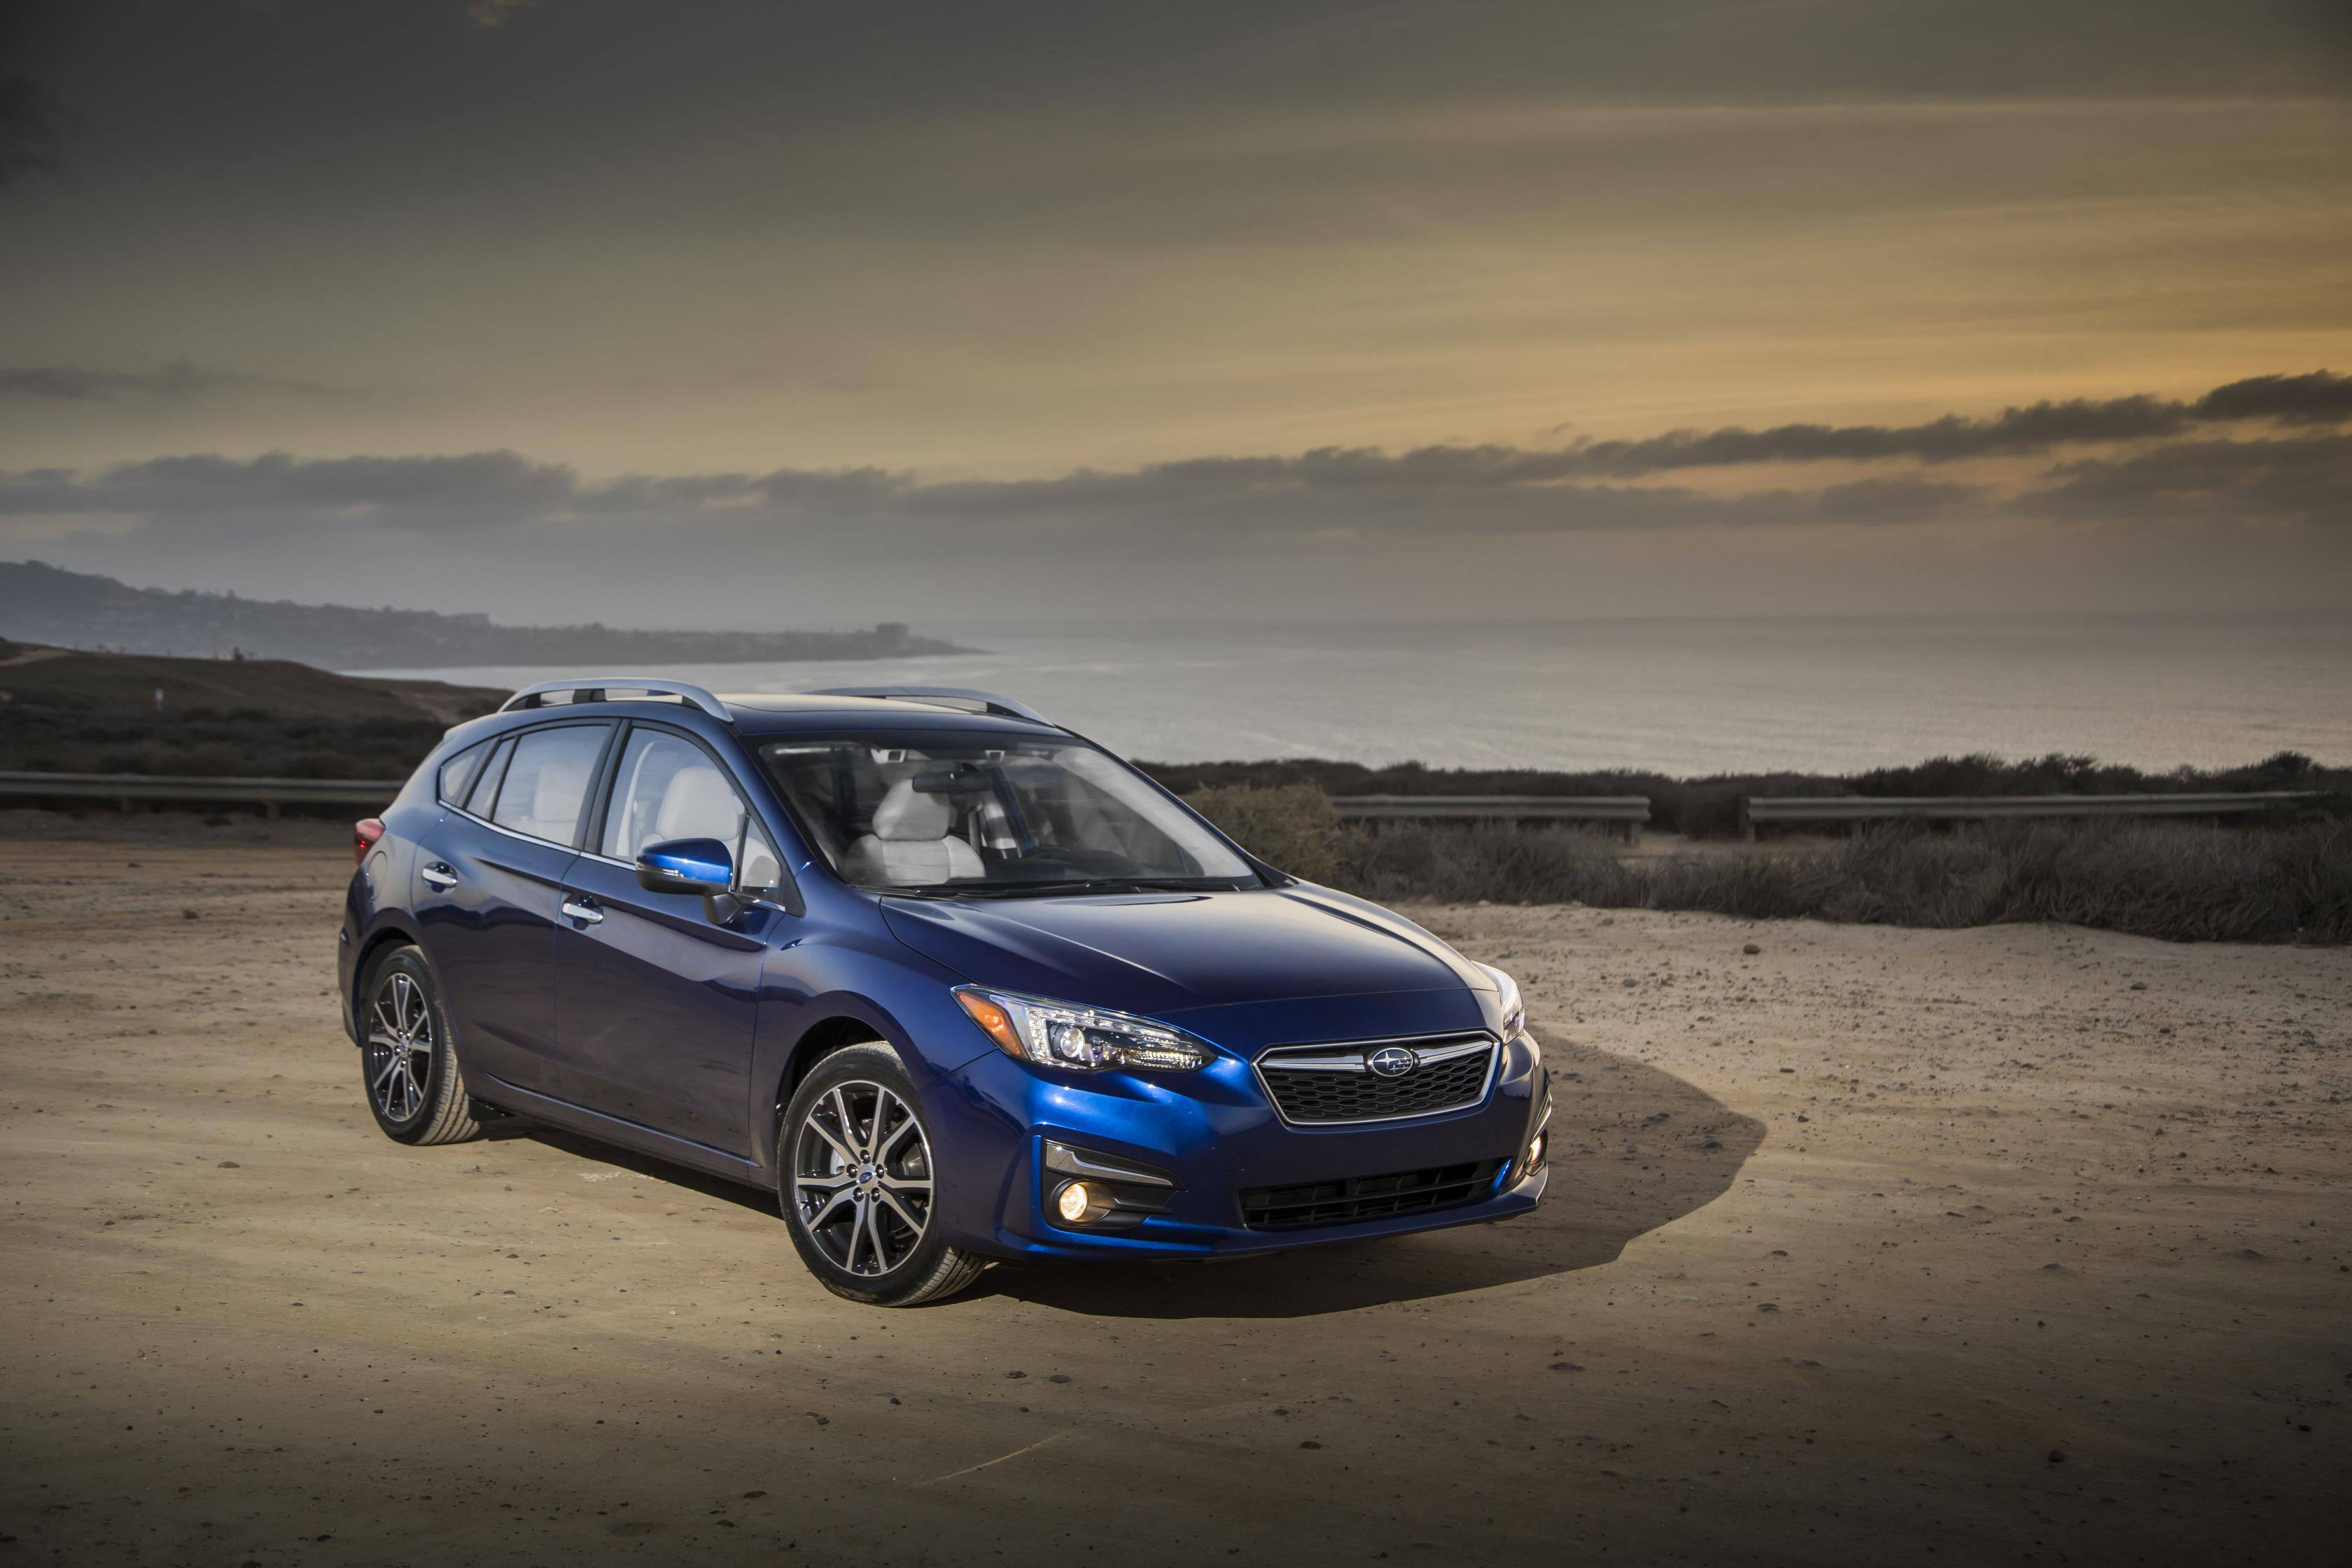 Subaru Impreza, one of Subaru's top selling vehicles in calendar year 2017